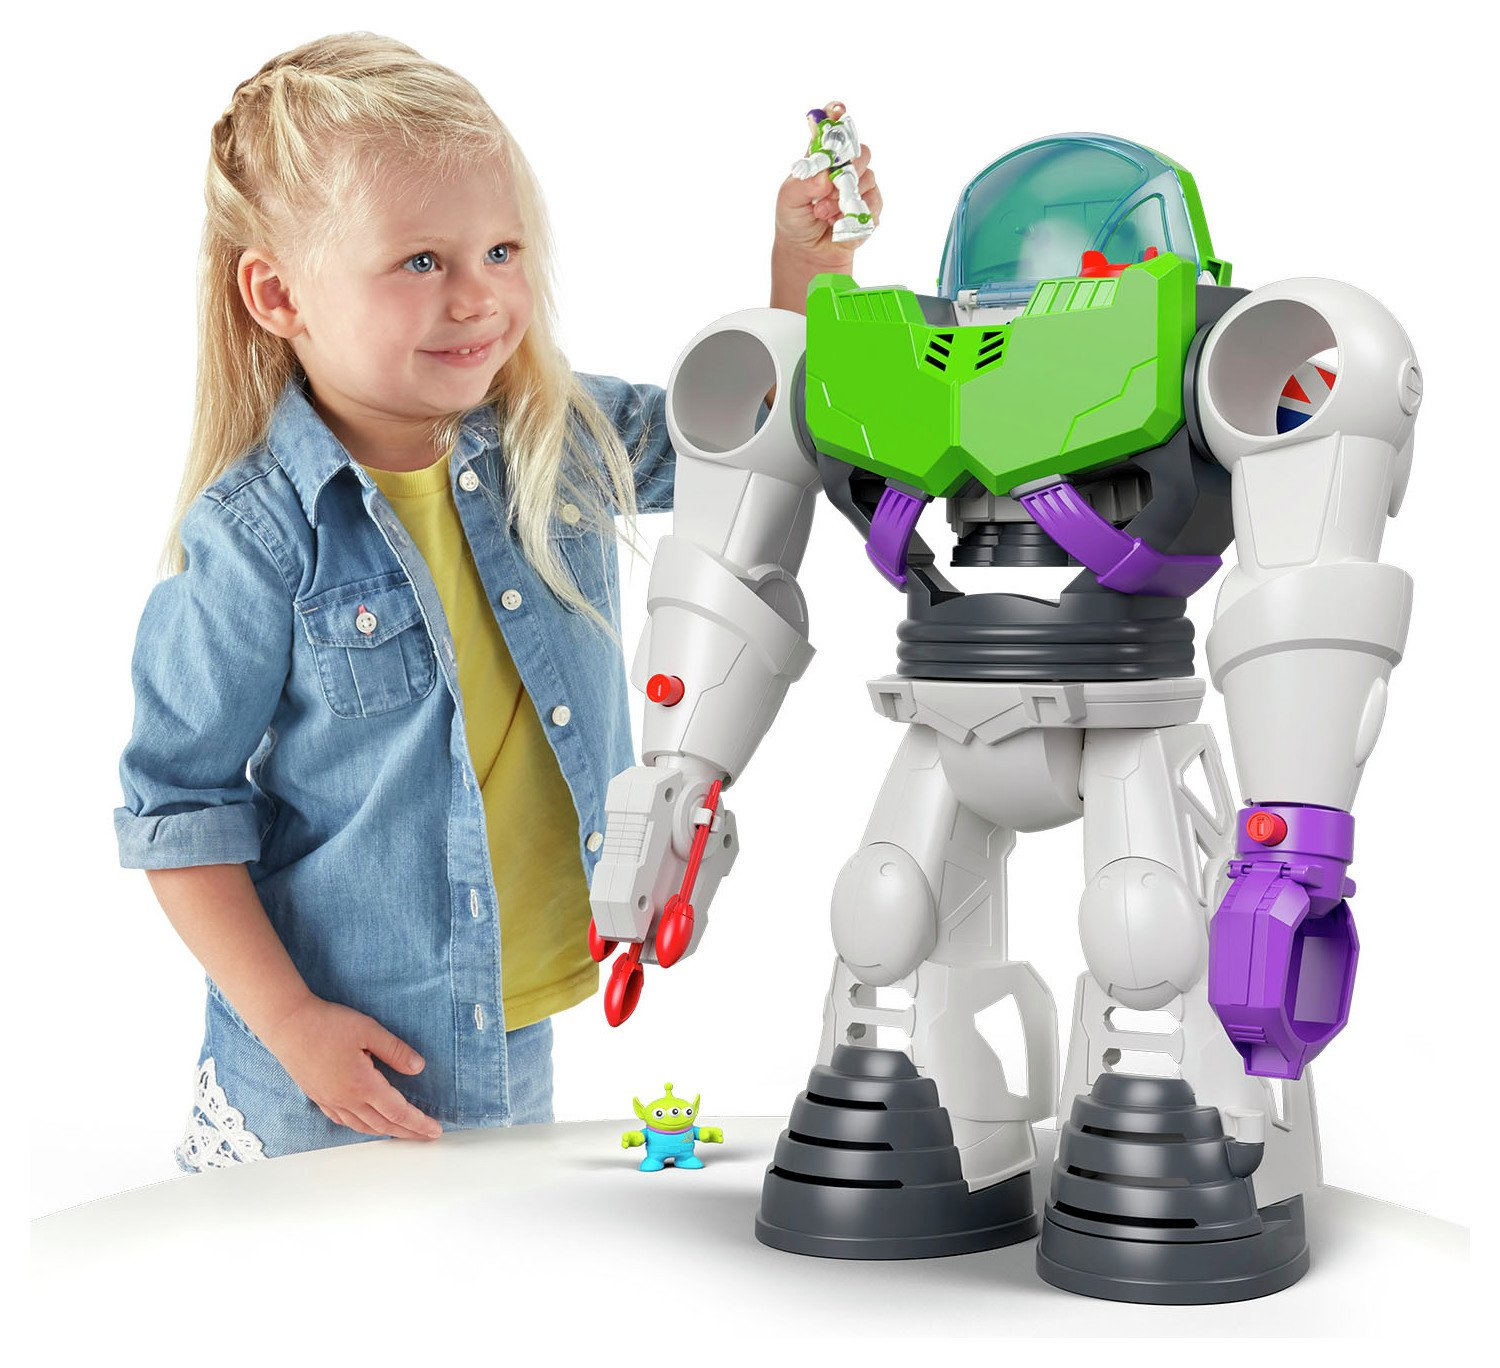 Fisher-Price Imaginext Disney Toy Story Buzz Lightyear Robot